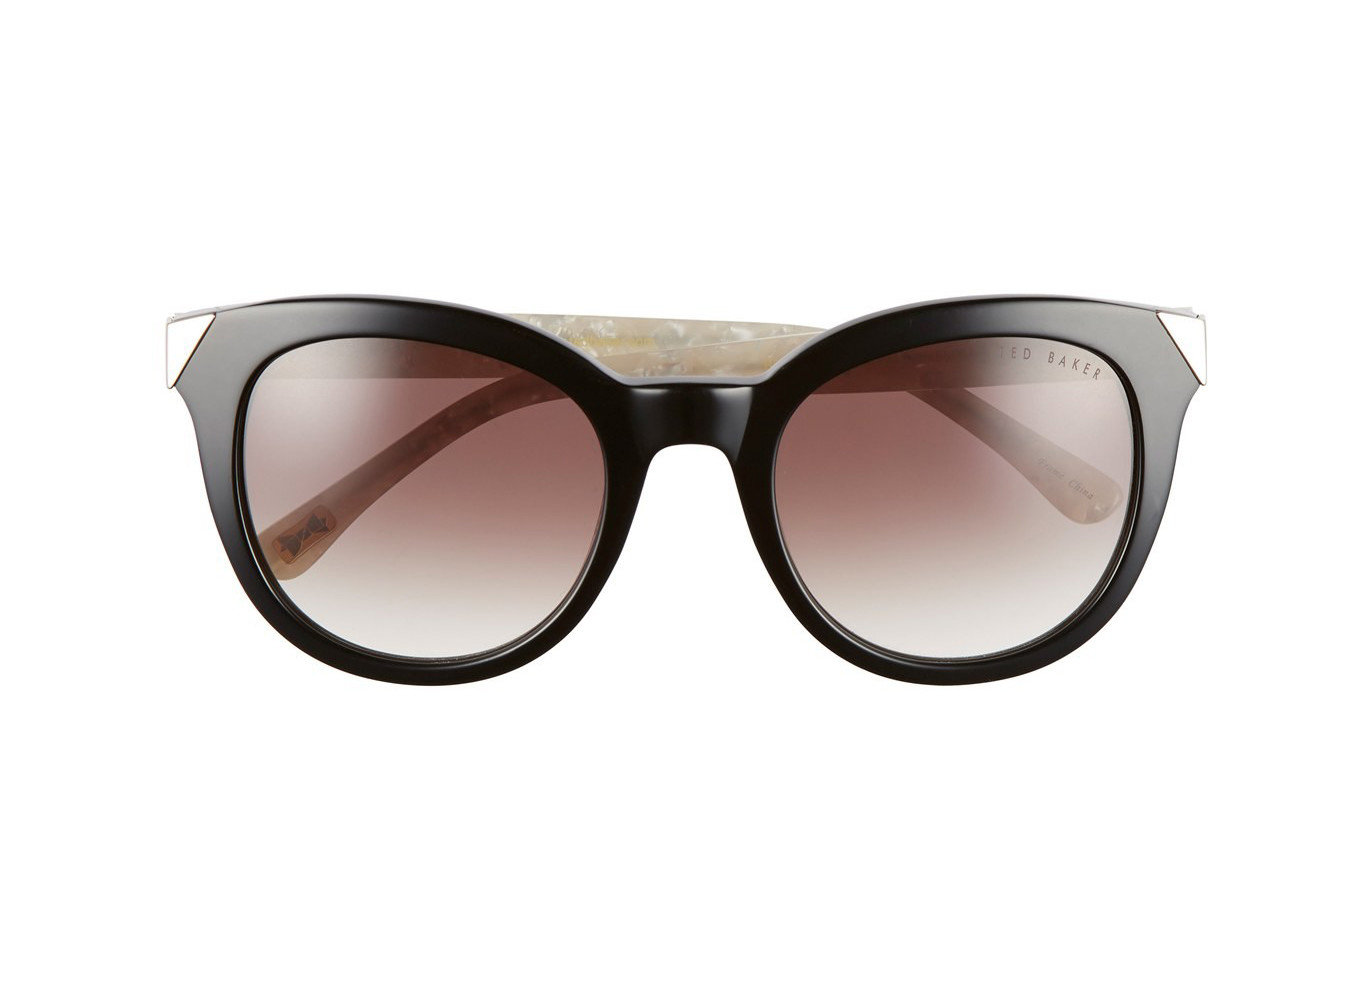 Travel Shop spectacles sunglasses accessory eyewear goggles vision care brown glasses product product design